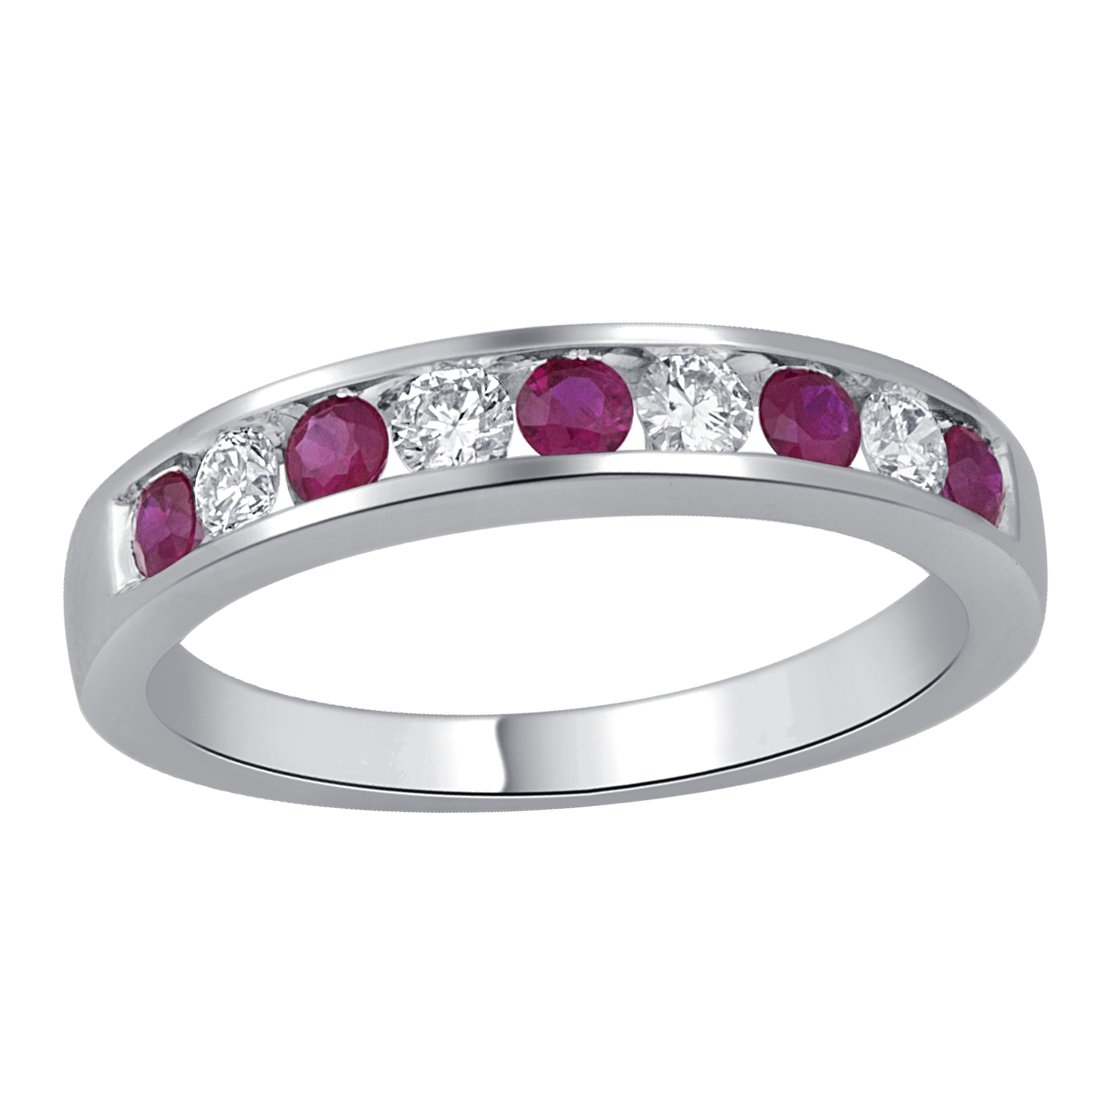 Jewel Ivy 14K White Gold Ring with Ruby and Diamond (I2-I3-G-H-I) Size US-6.5-6.75, Fine Jewelry, Best For Gifting Wife, Girlfriend, Friend